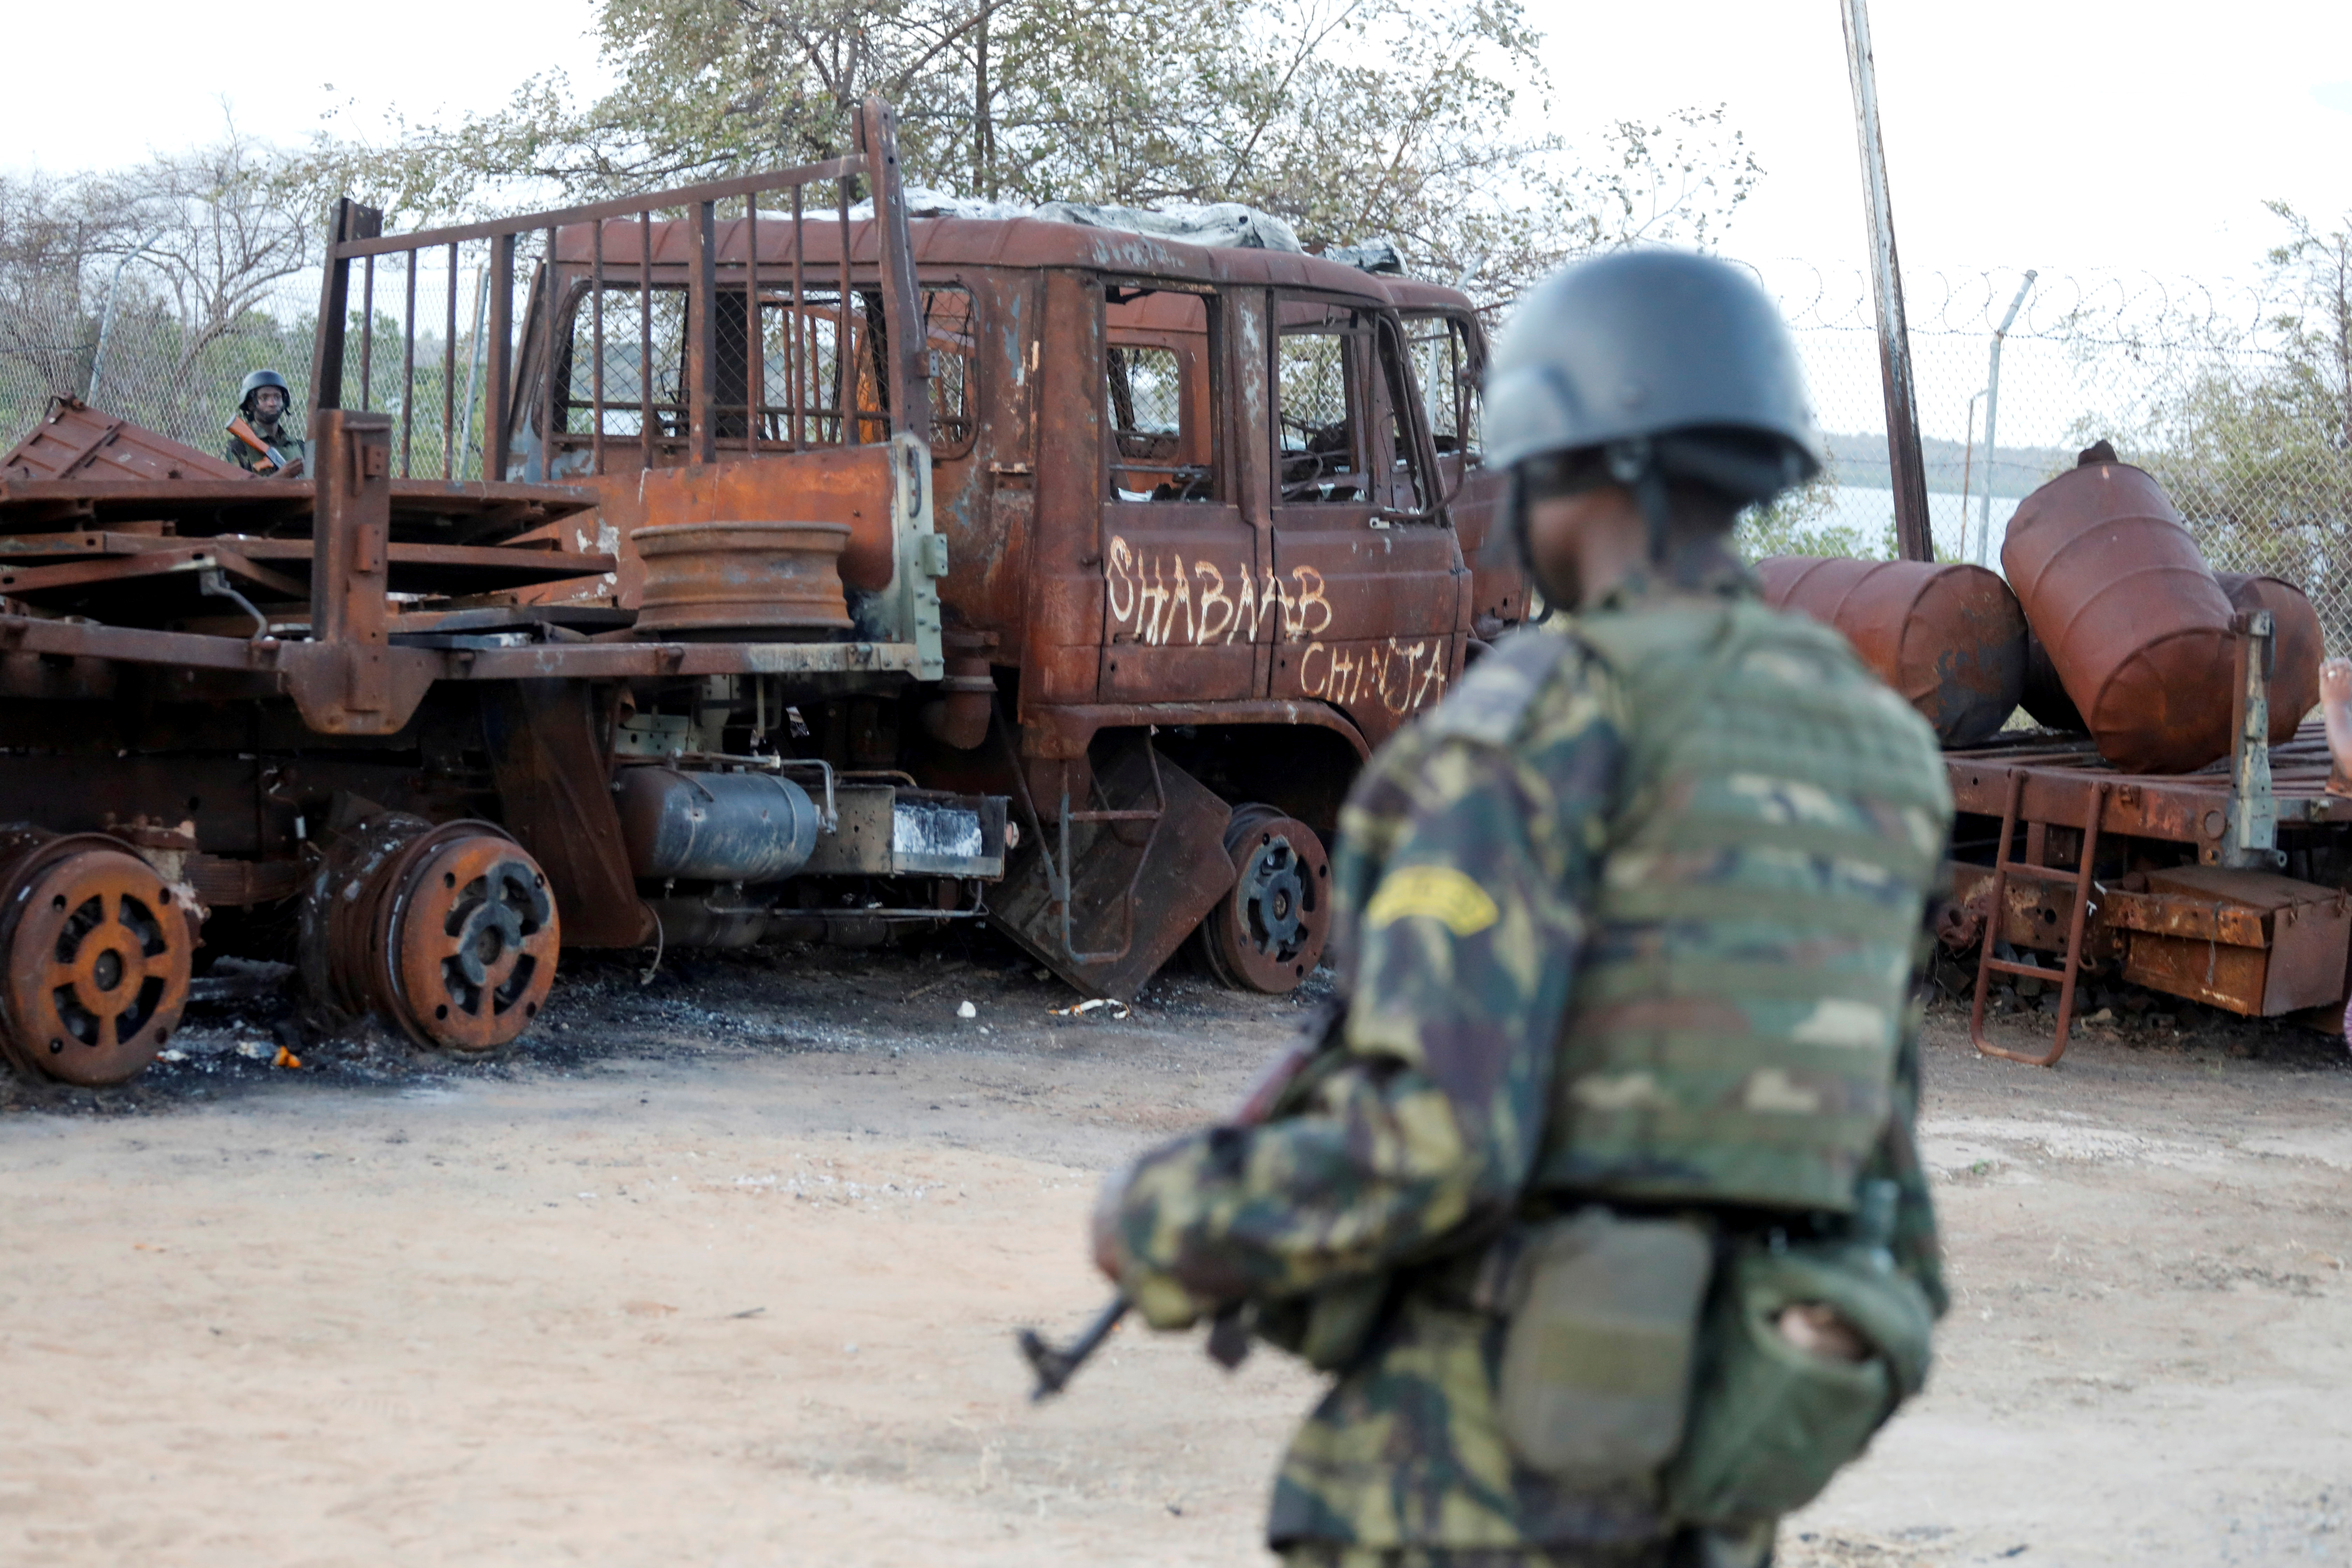 A Rwandan security forces soldier walks past a burned truck at the port of Mocimboa da Praia, Mozambique September 22, 2021. The graffiti reads